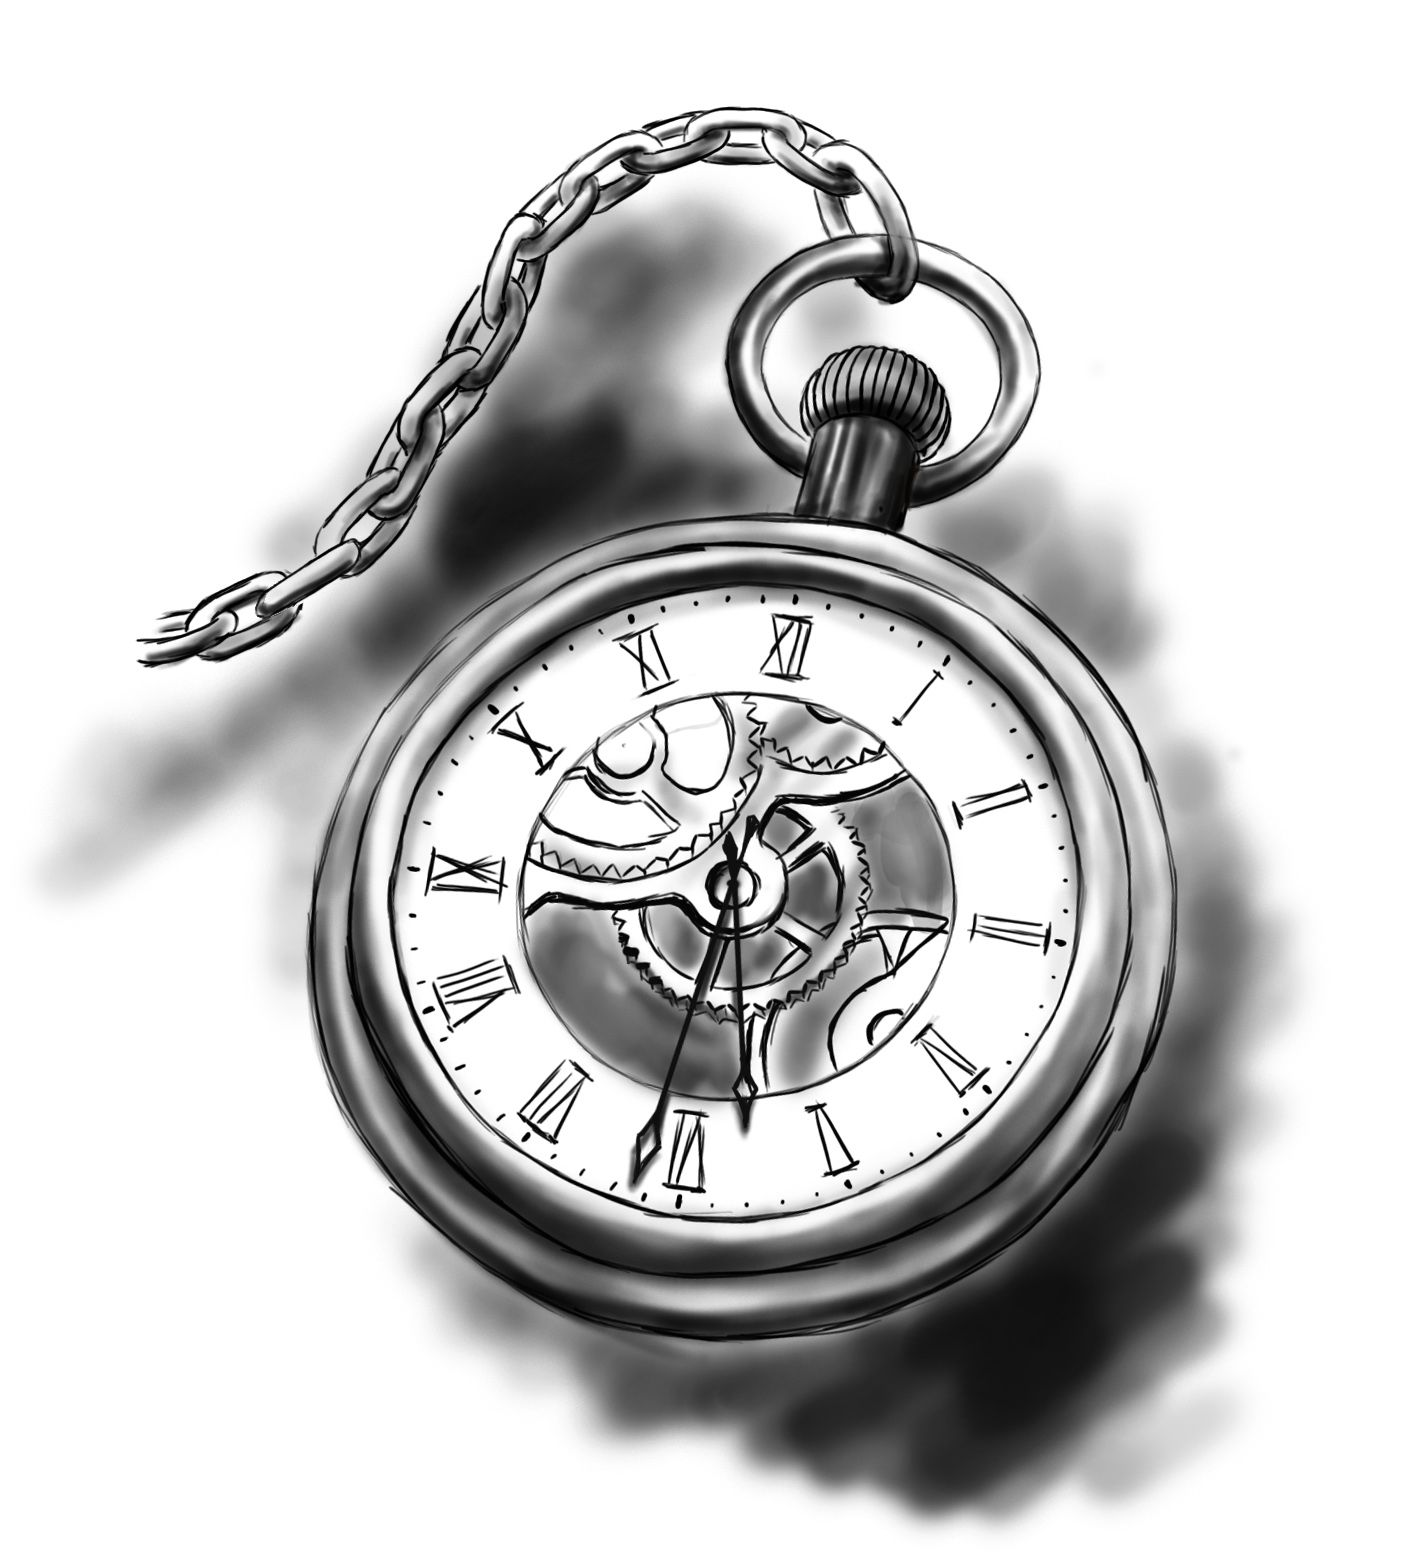 Pocket Watch Drawings: Pocket Watch This Represents Thy Think It Is Time For Dave